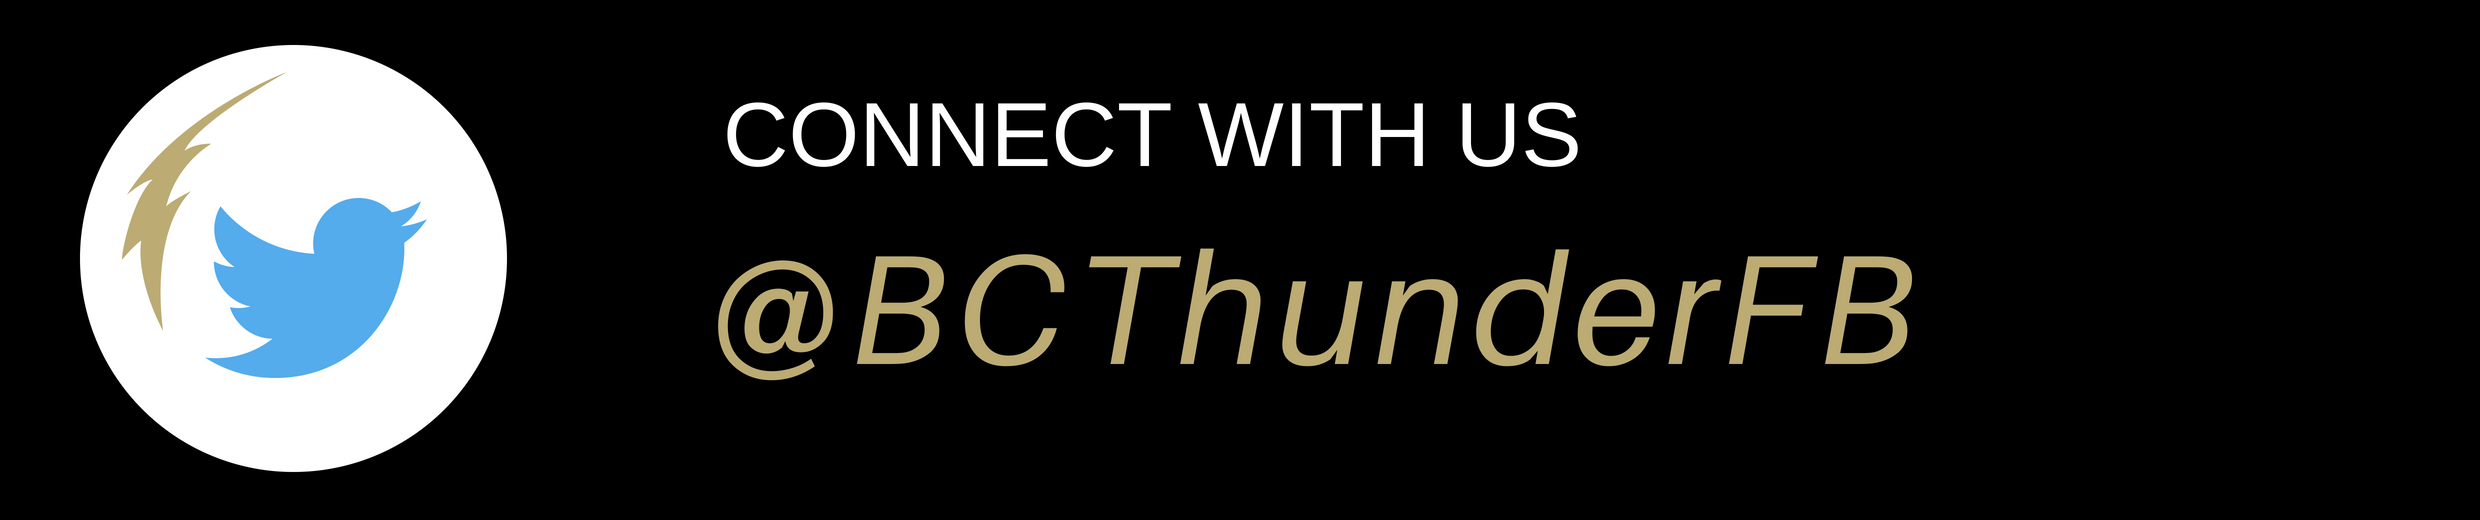 Connect with US @BCThunderFB